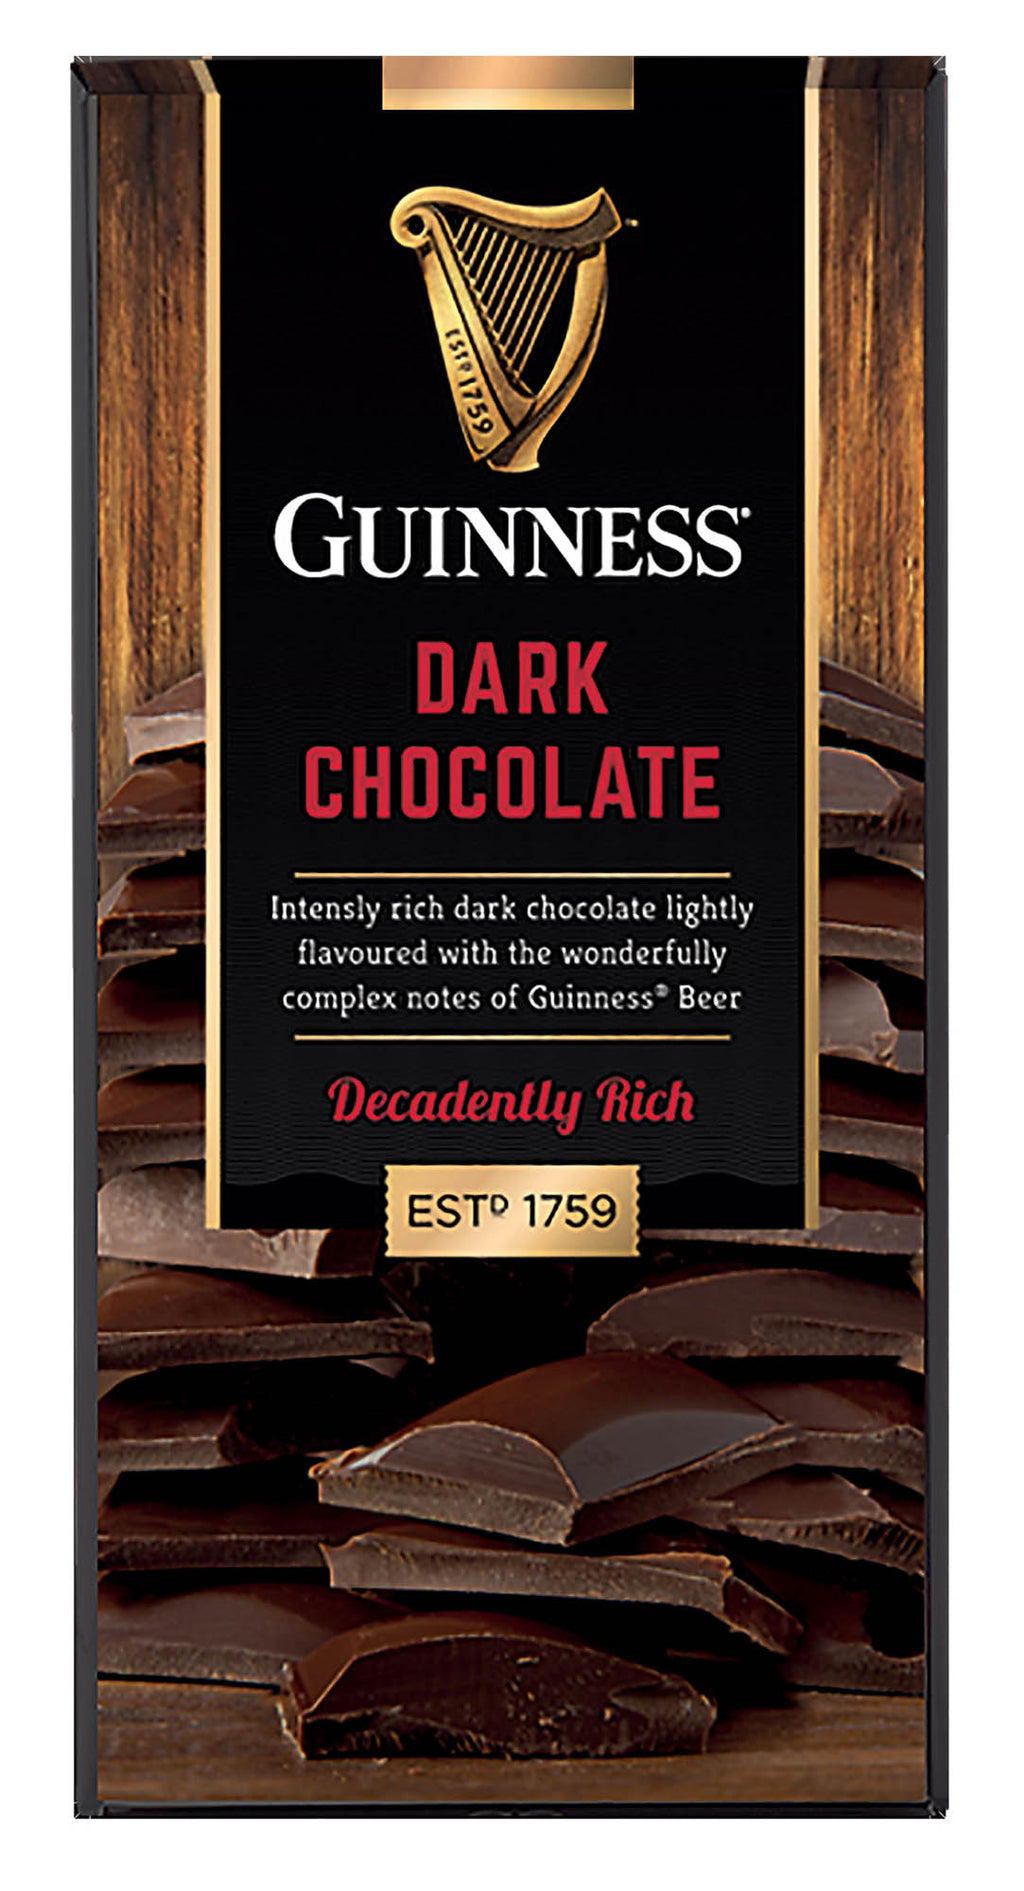 Guinness 90g Chocolate bar,  3 varieties